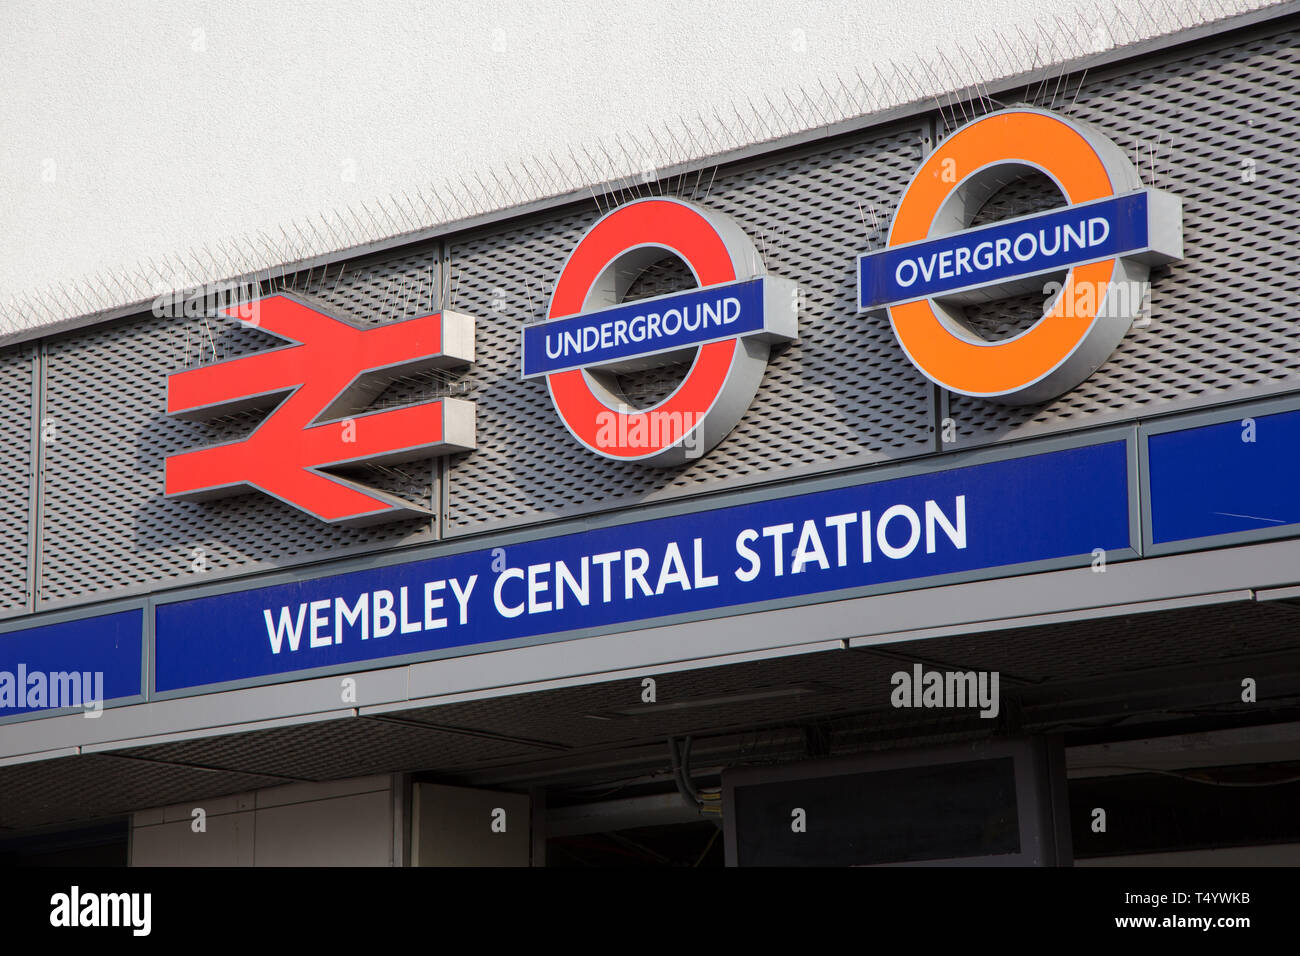 Wembley Central Station, close up of signs above entrance to Underground, Overground and rail station on High Road, Wembley - Stock Image